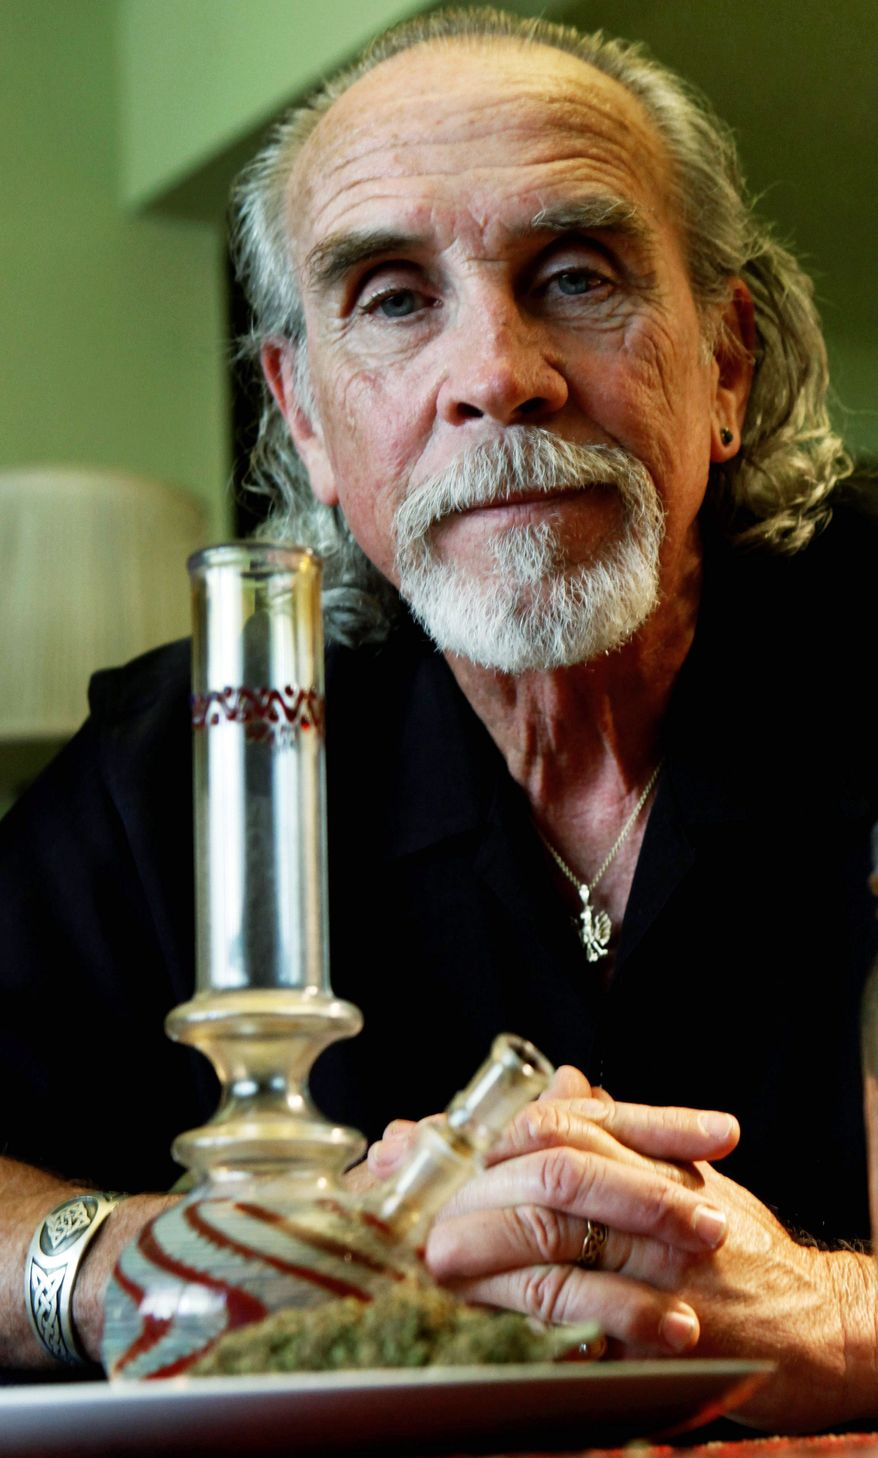 Lonnie Painter, 65, who uses marijuana for medicinal purposes and is the director of Laguna Woods for Medical Cannabis, displays his medicinal herb and bong last month. (Associated Press)